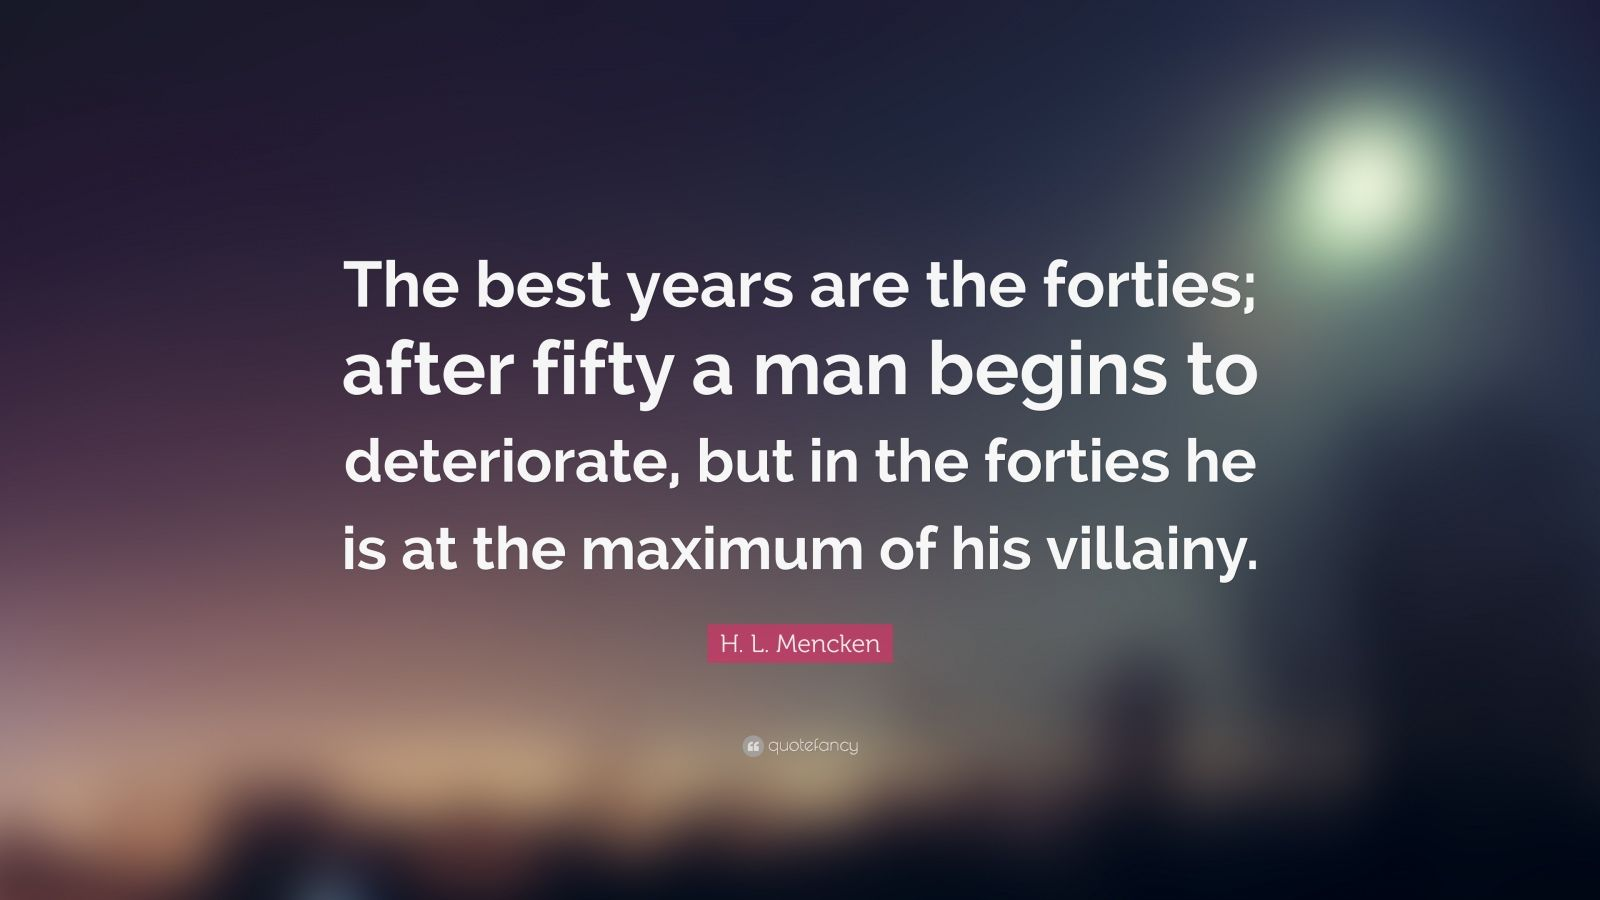 "H. L. Mencken Quote: ""The best years are the forties; after fifty a man begins to deteriorate, but in the forties he is at the maximum of his villainy."""